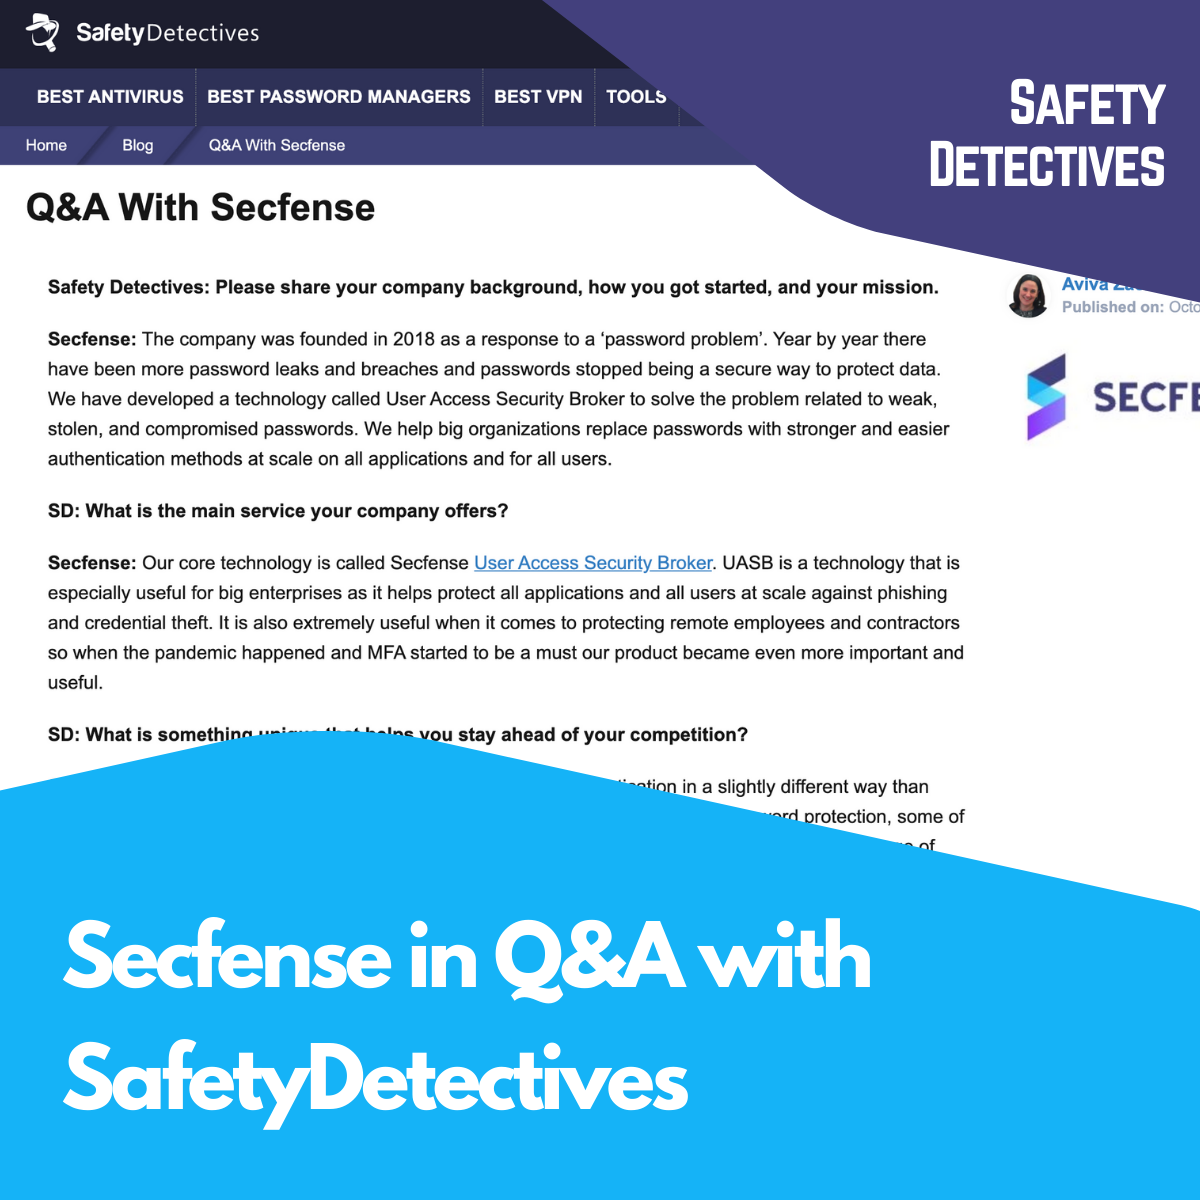 Secfense in Q&A with SafetyDetectives